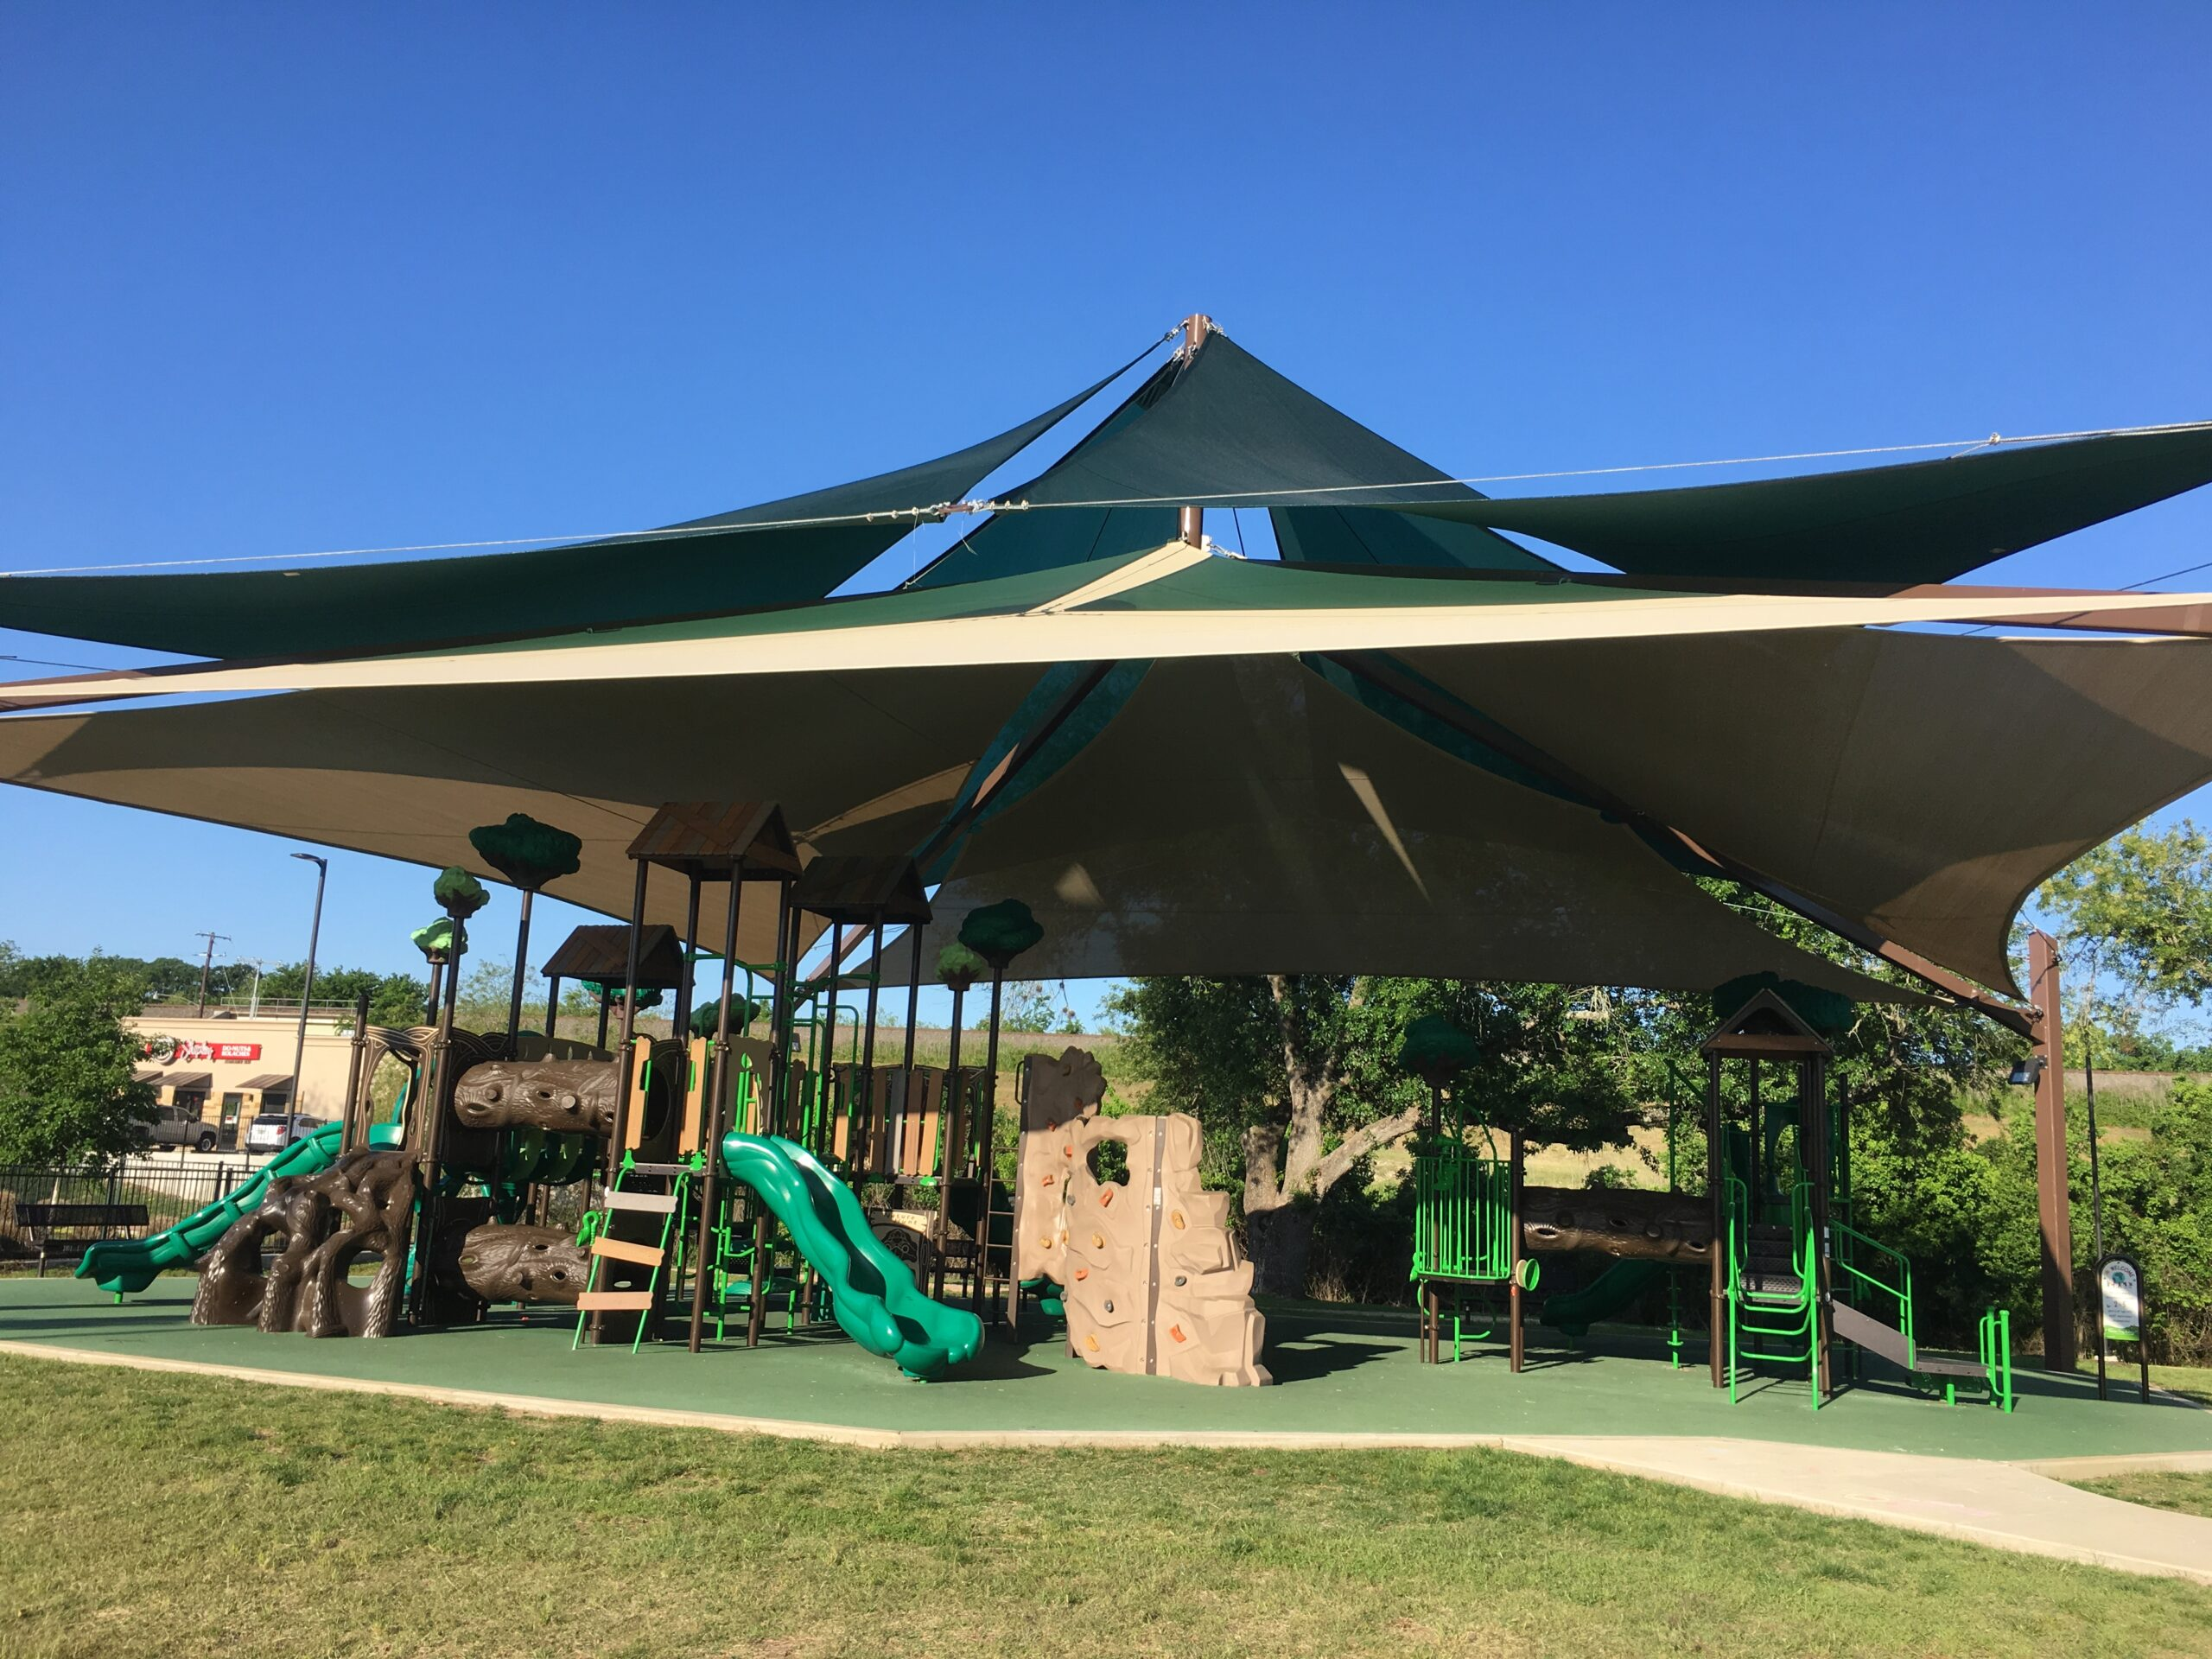 shaded playground with green slide and tan rock climbing wall